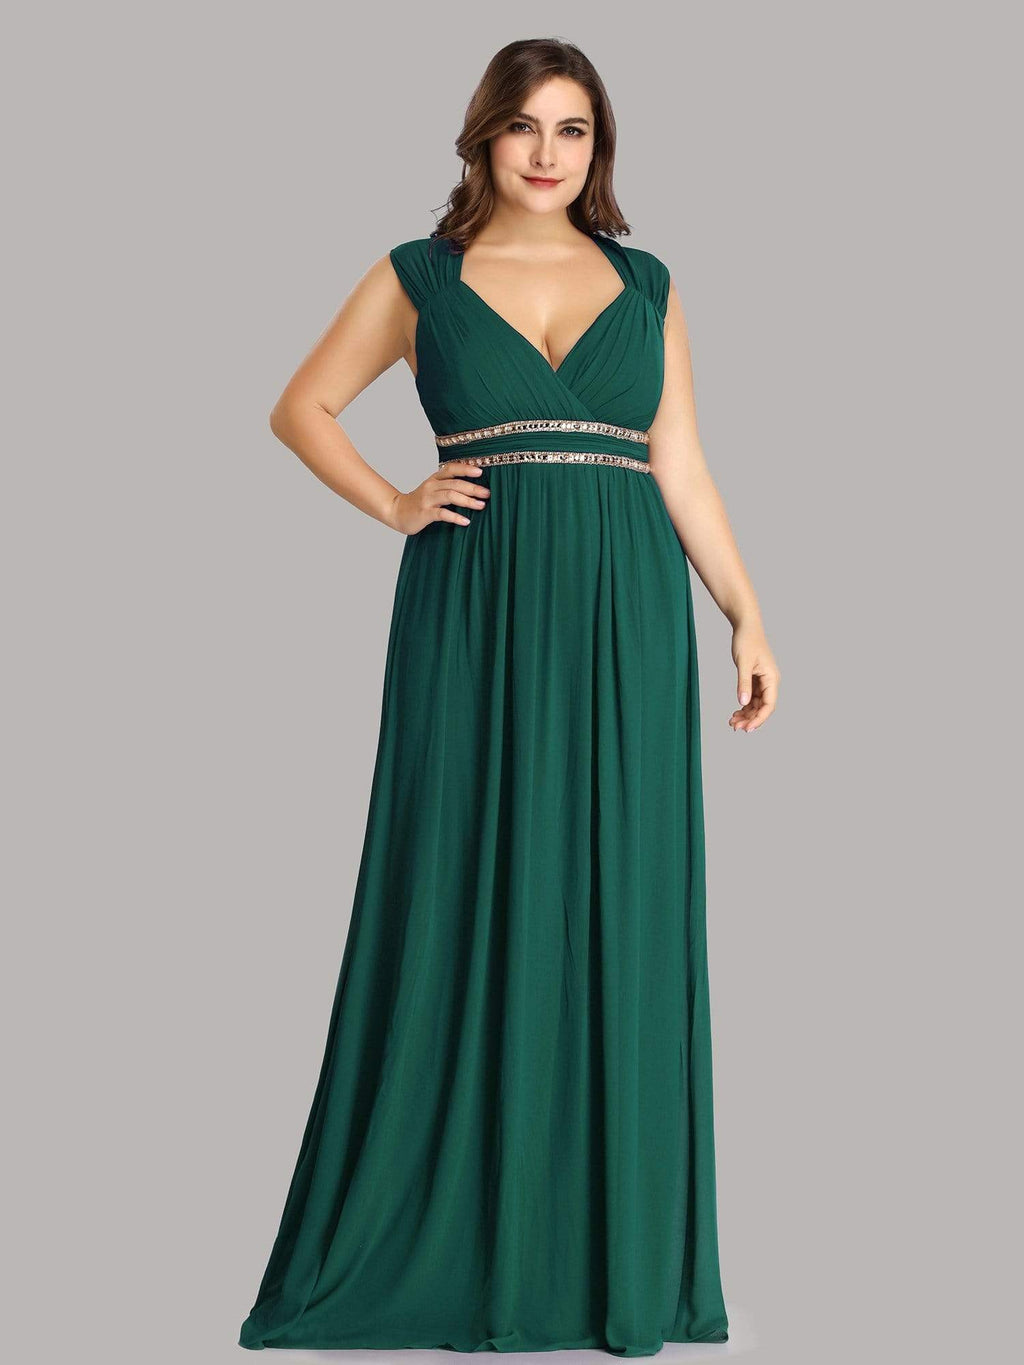 Tina bling cut out back chiffon bridesmaid dress in emerald green s8 Express NZ wide!